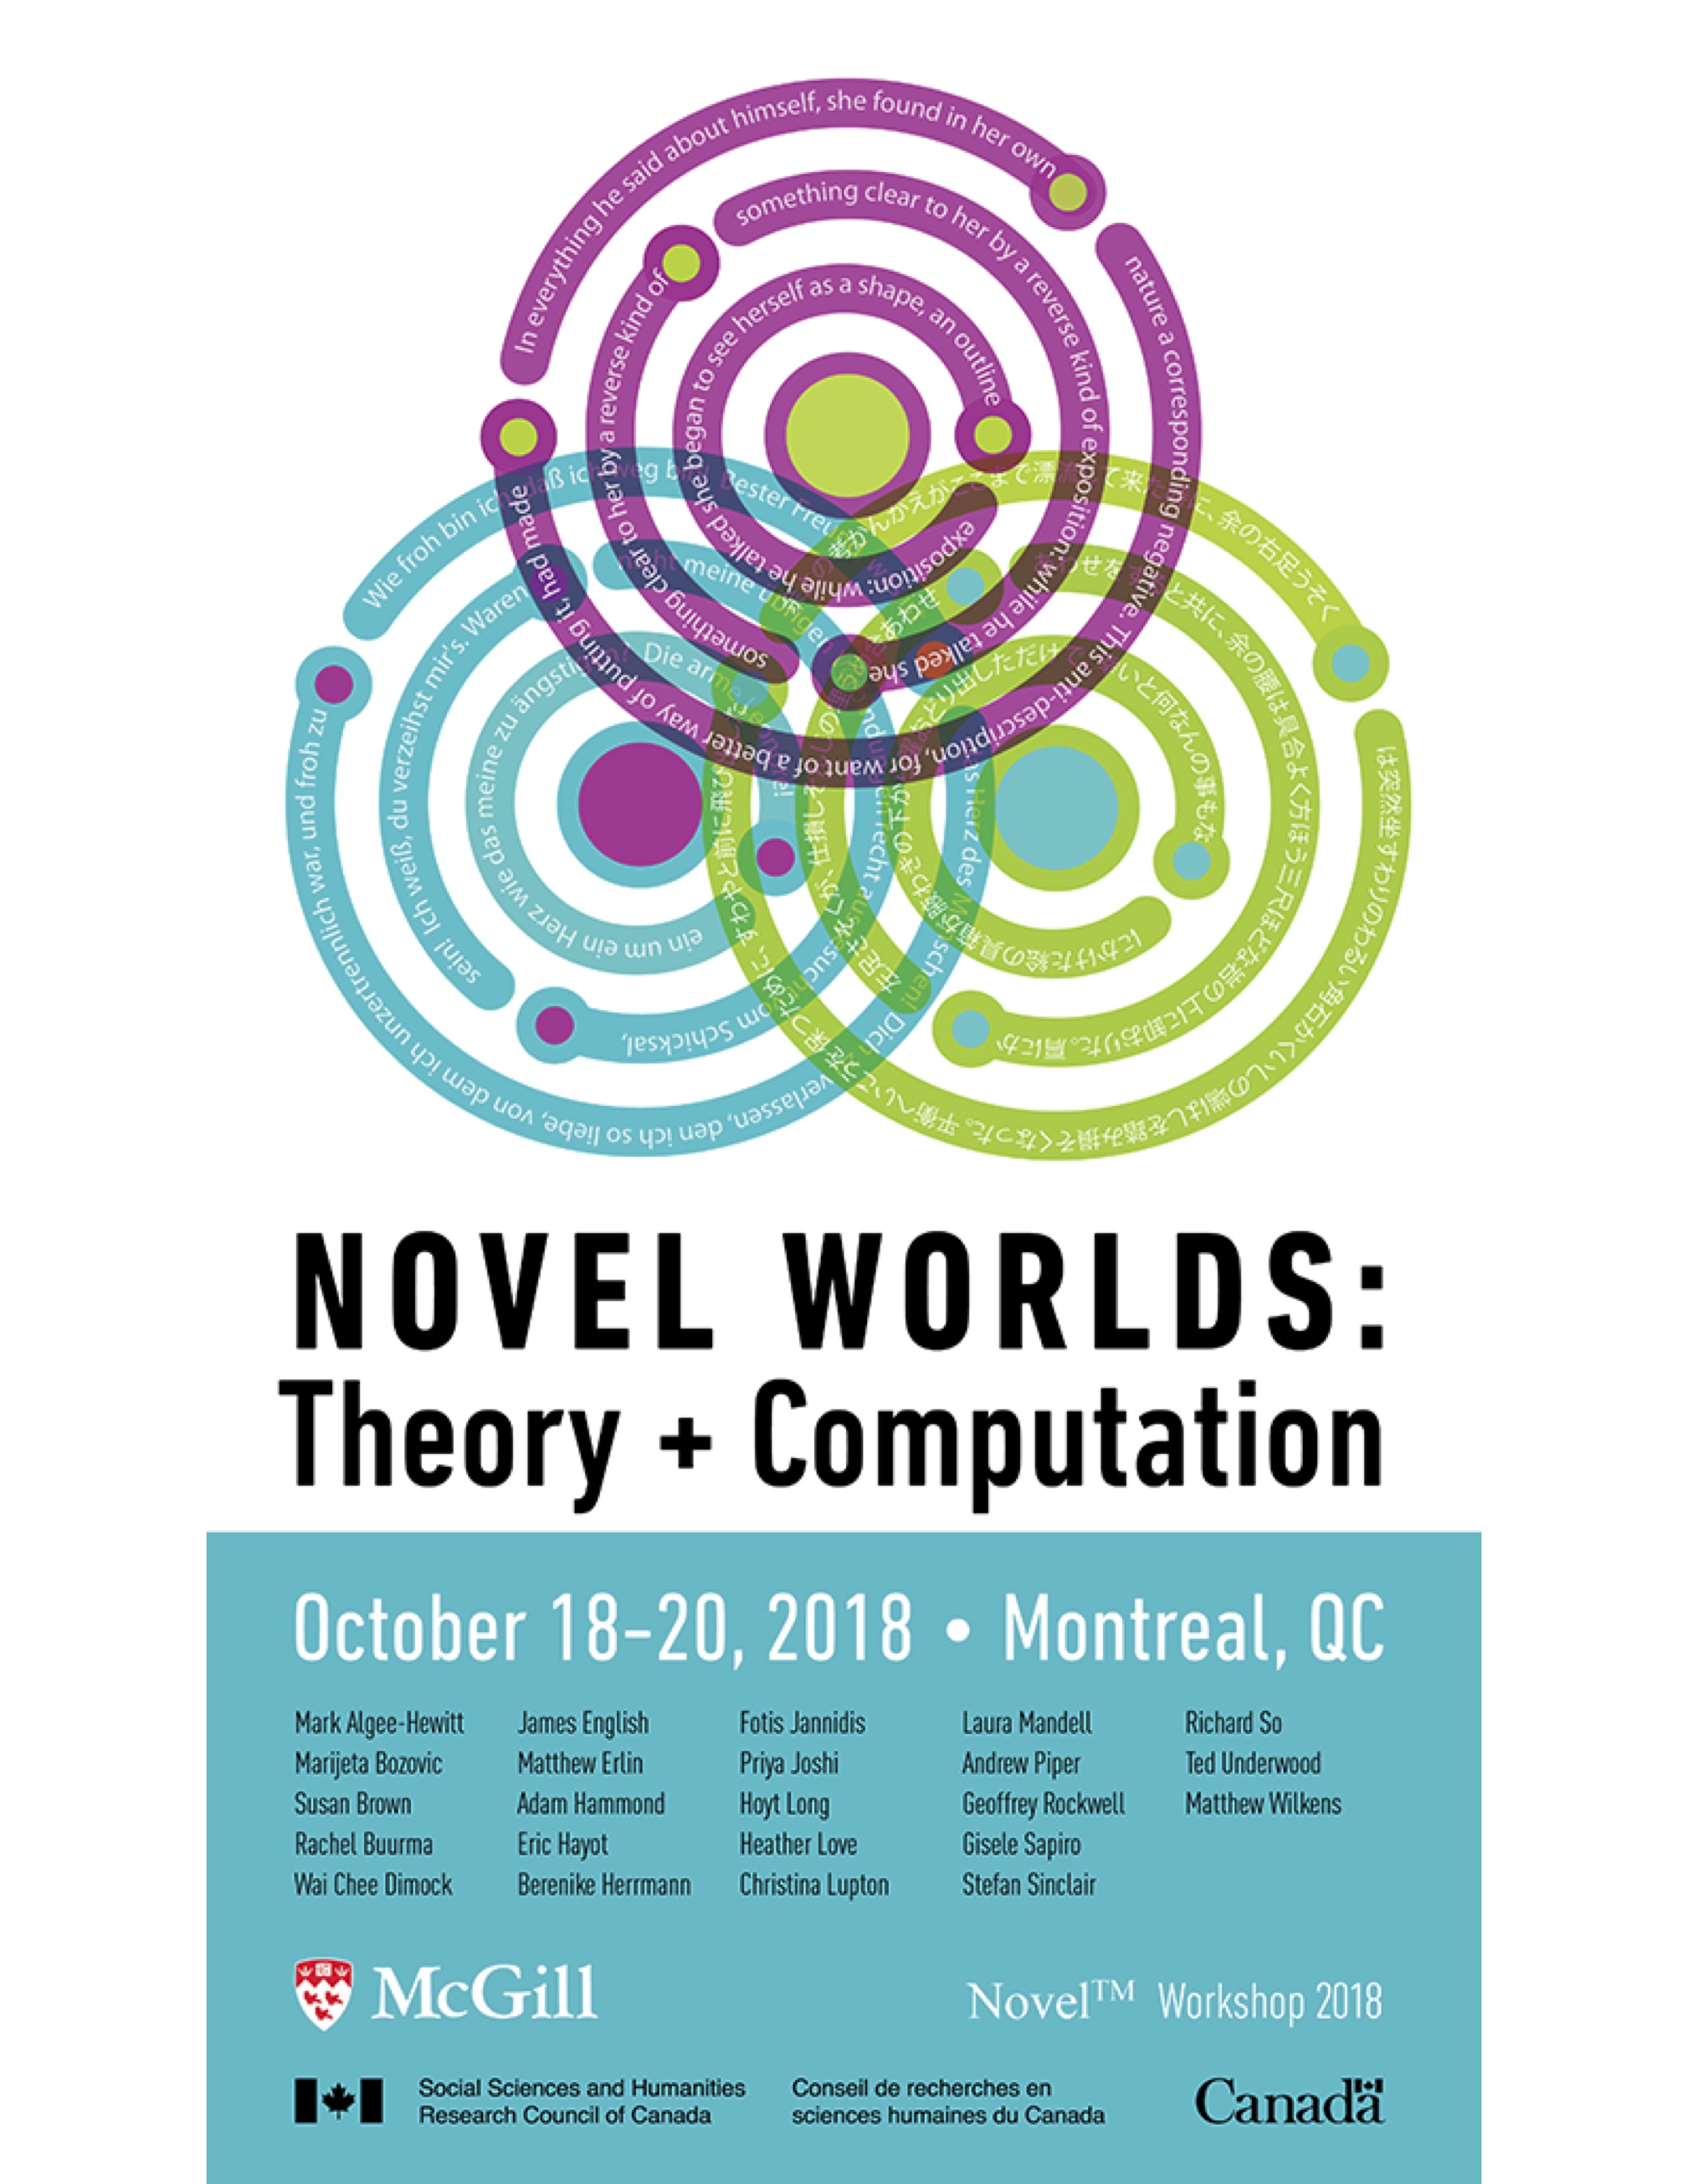 Novel Worlds: Theory + Computation